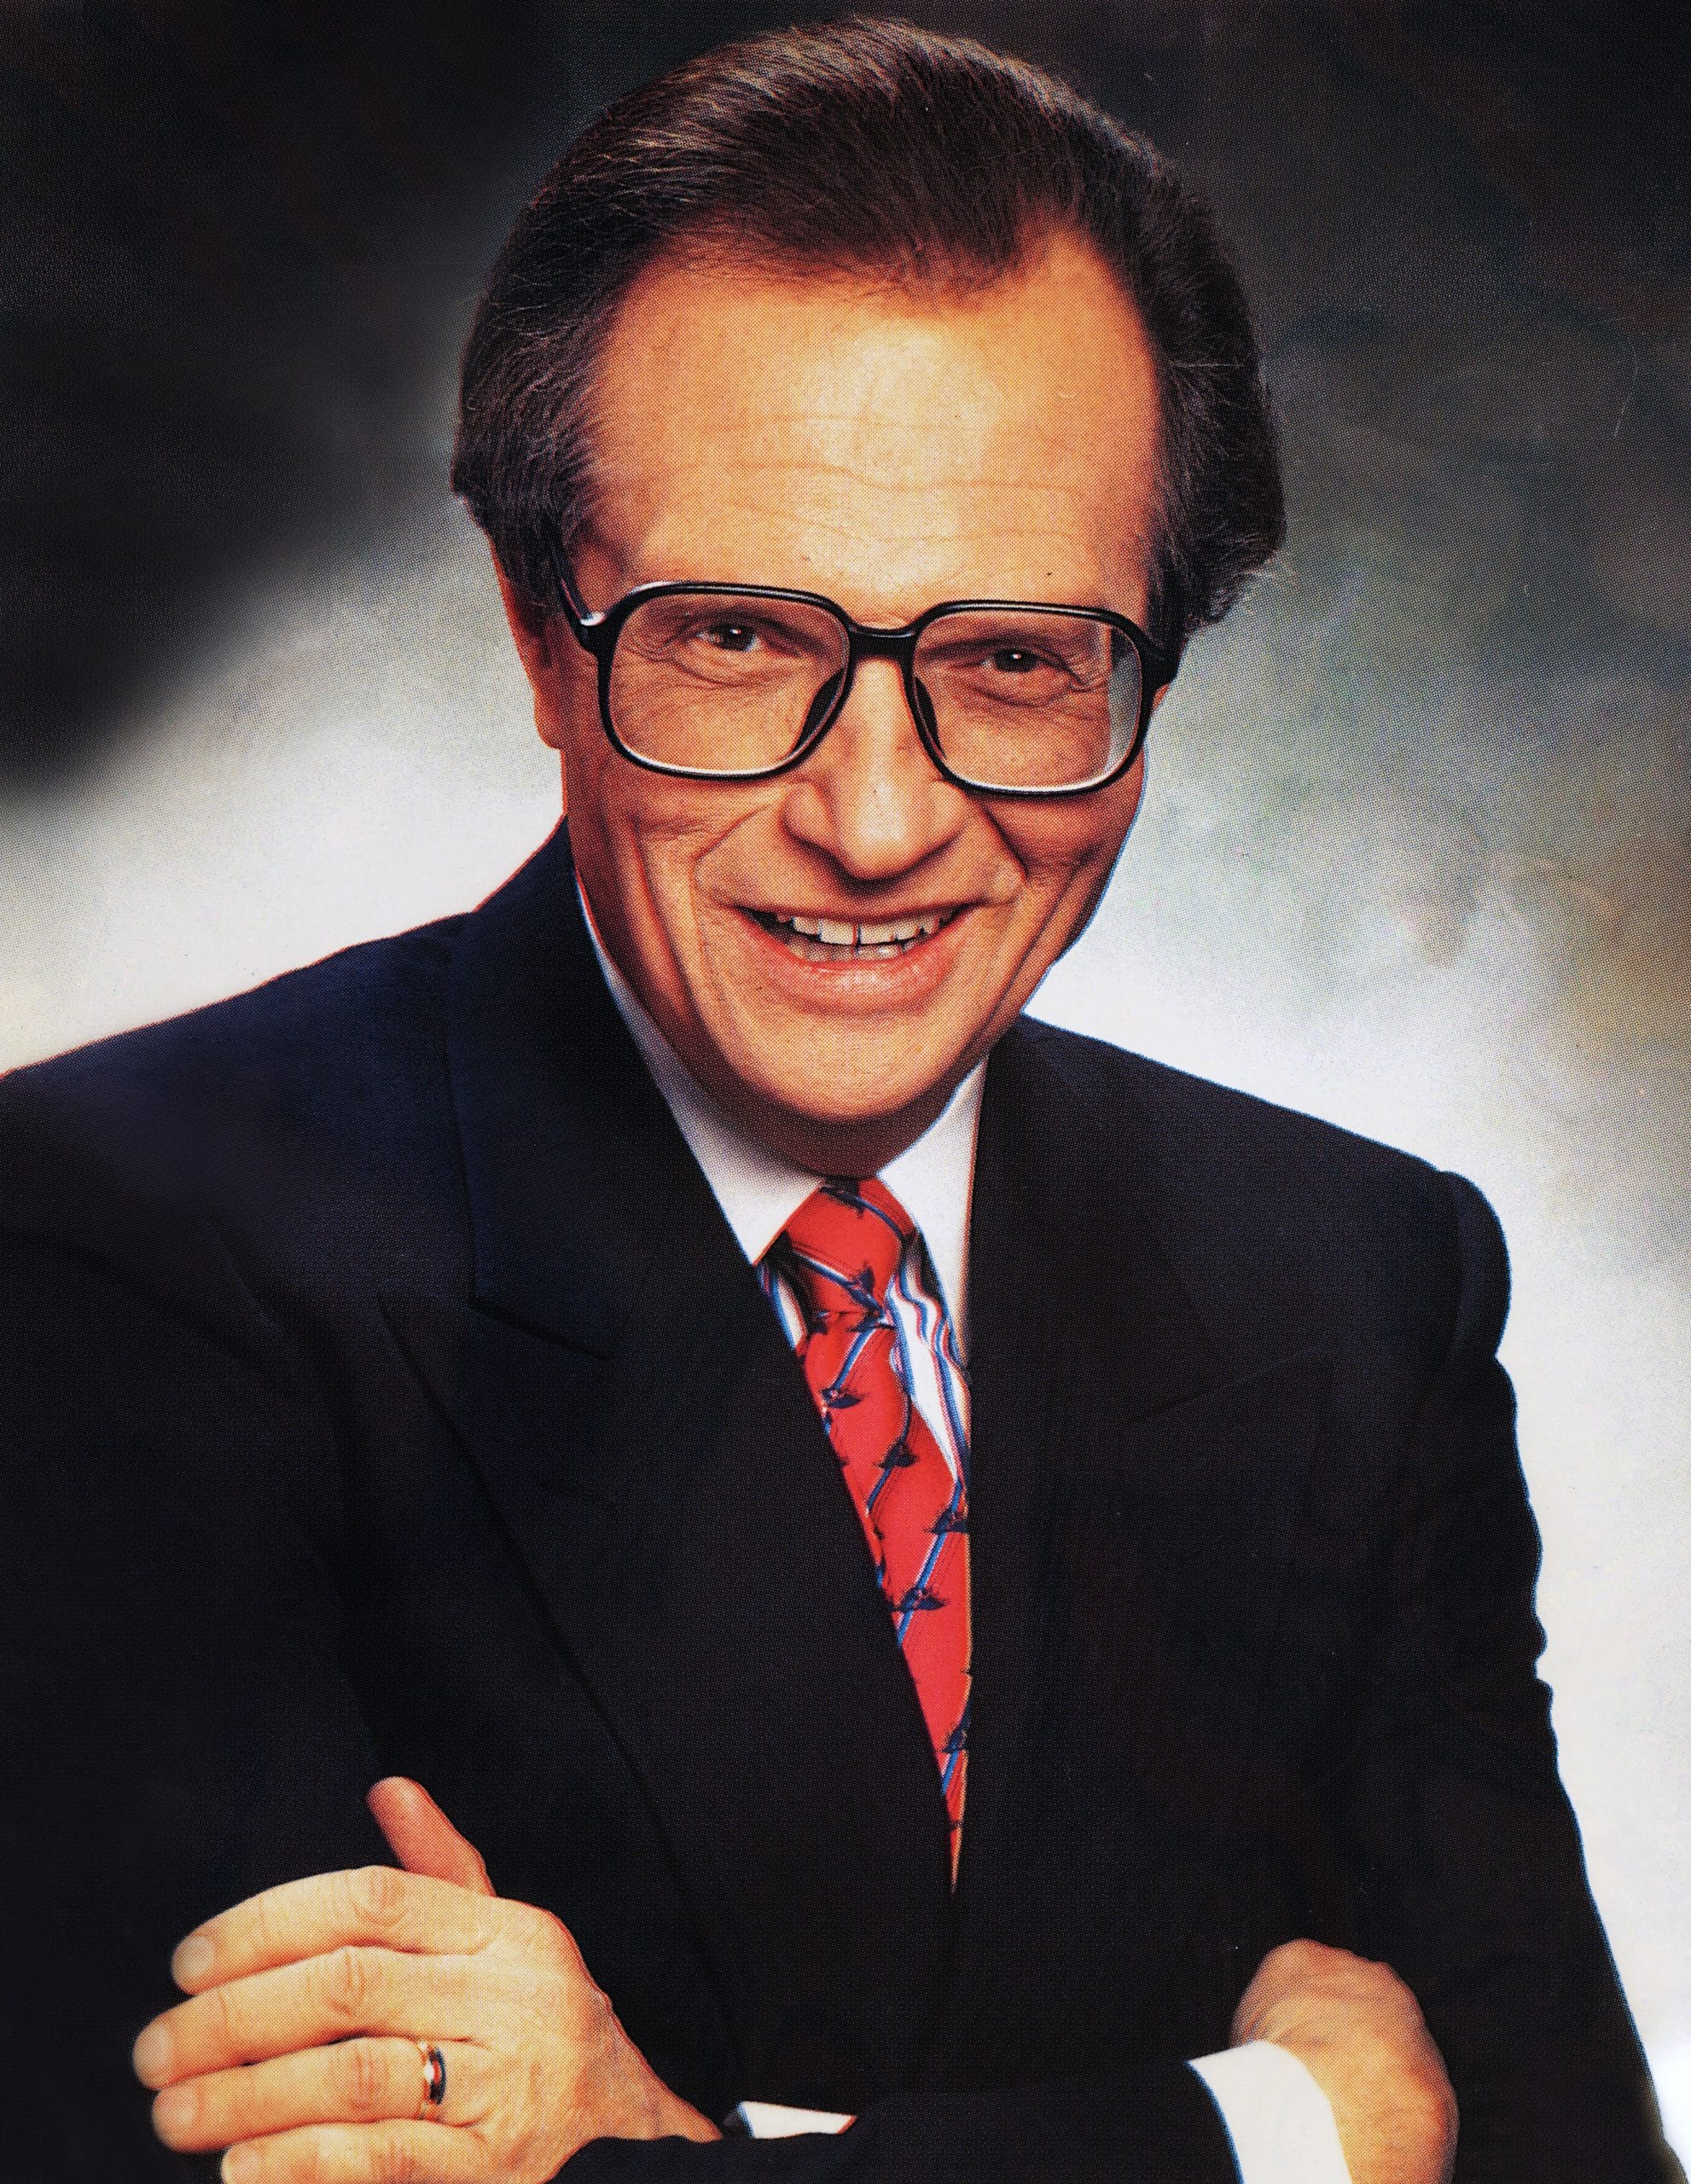 Larry King's Sons React To Their Father's Death